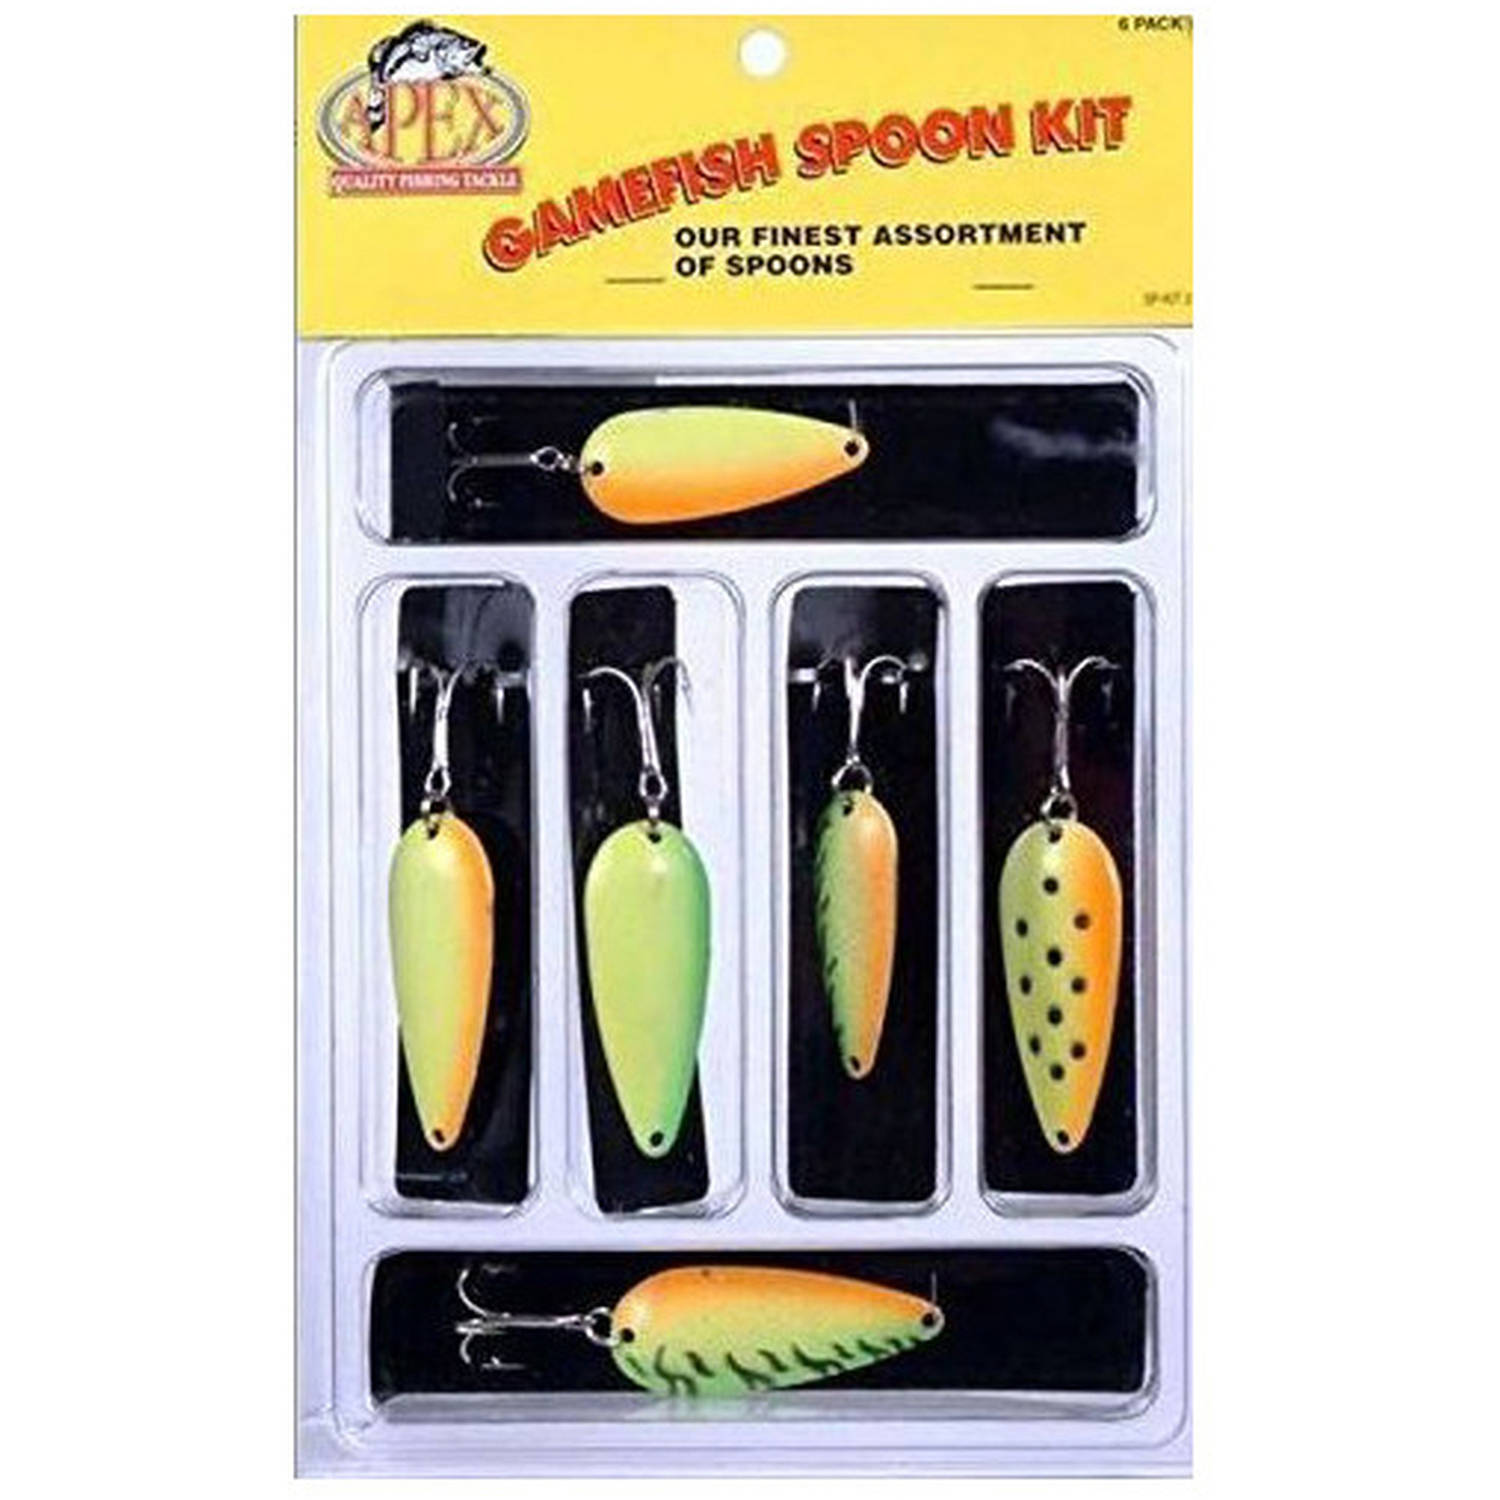 Apex Trout Gamefish Spoon Kit